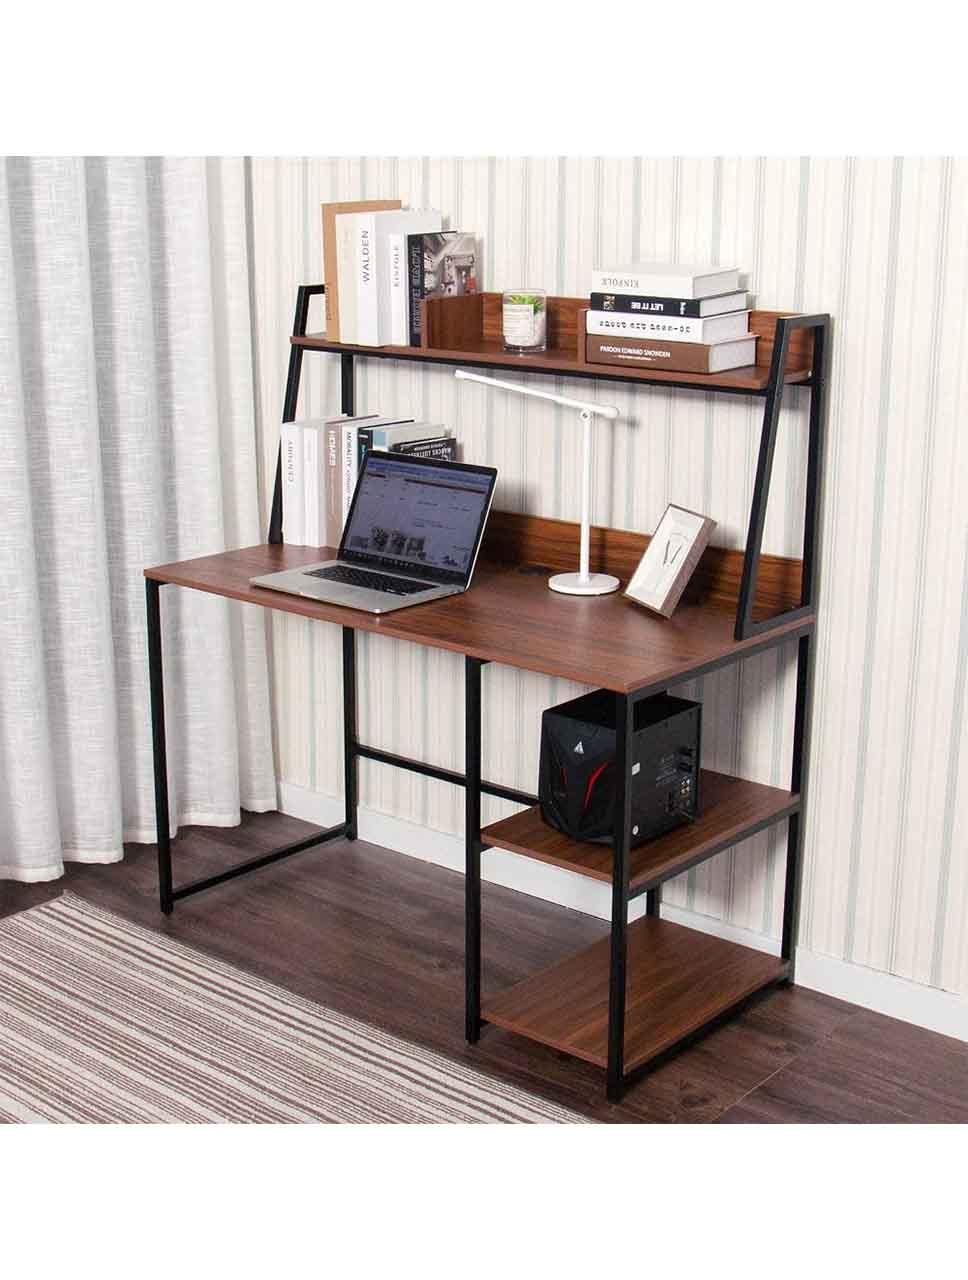 Computer Desk with Hutch and Bookshelf (Brown) - Elecwish